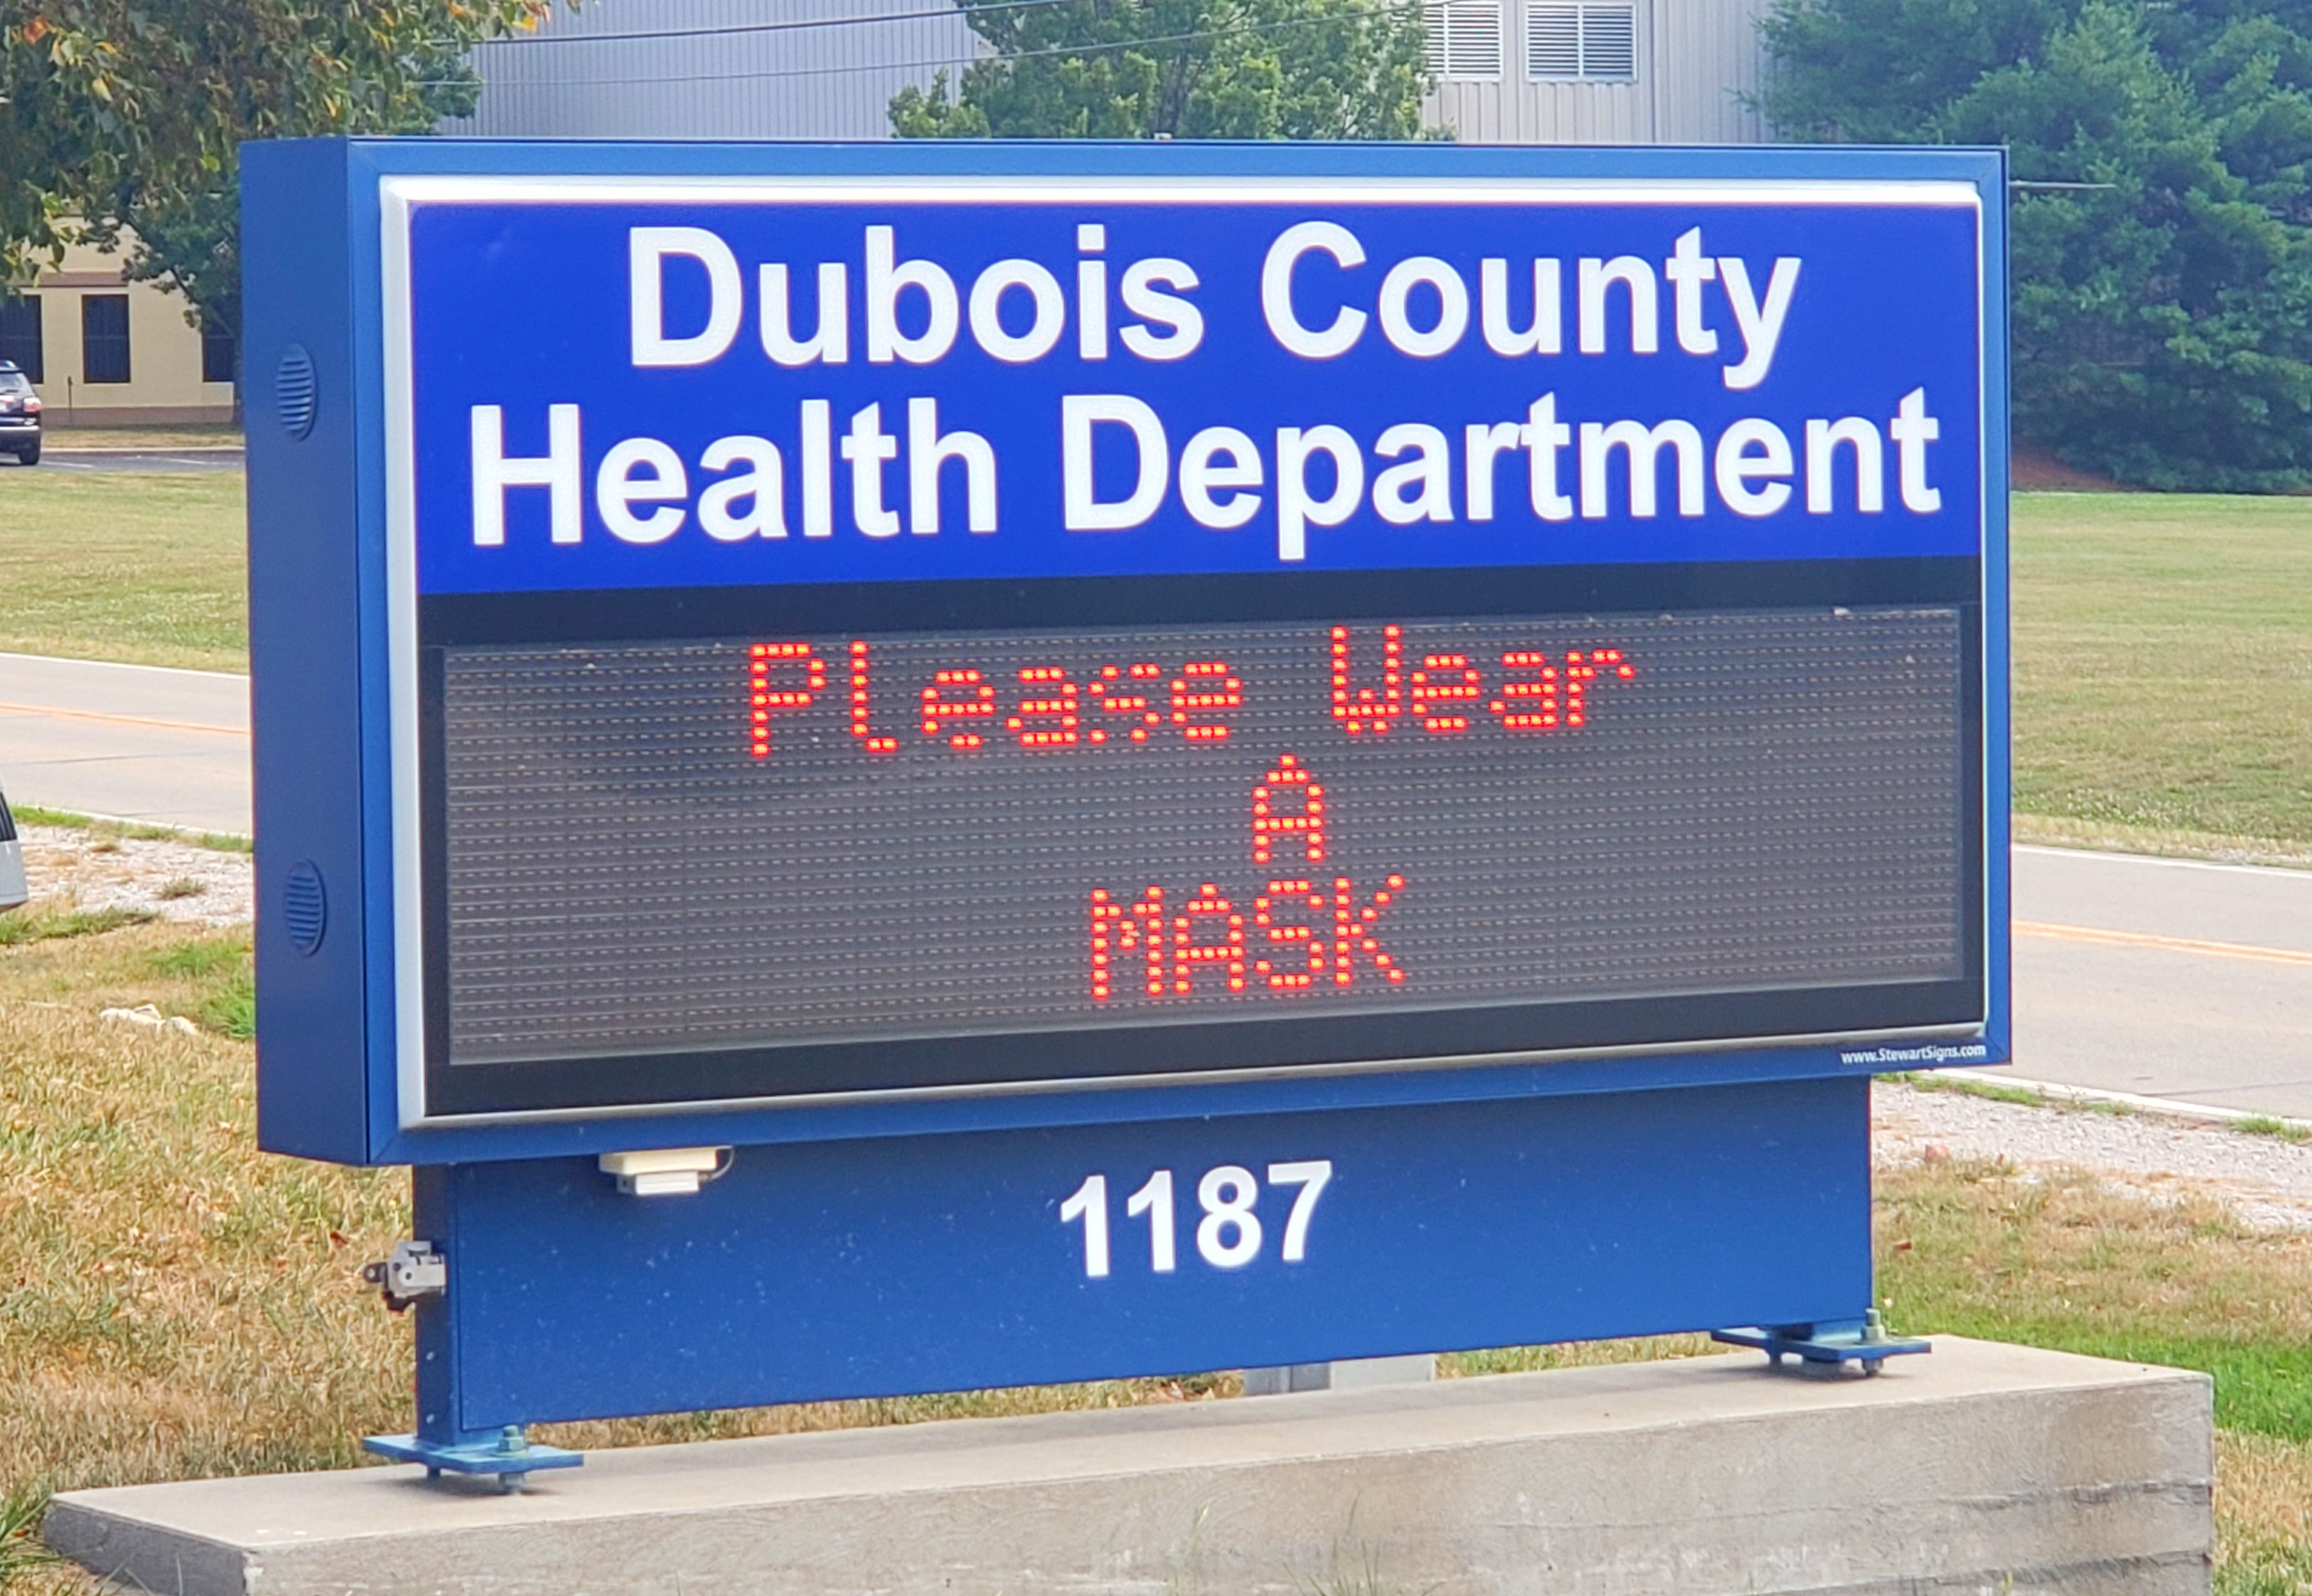 Dubois County Officials Report 59 New COVID-19 Cases Over the Weekend, Higher Than Others in the Area